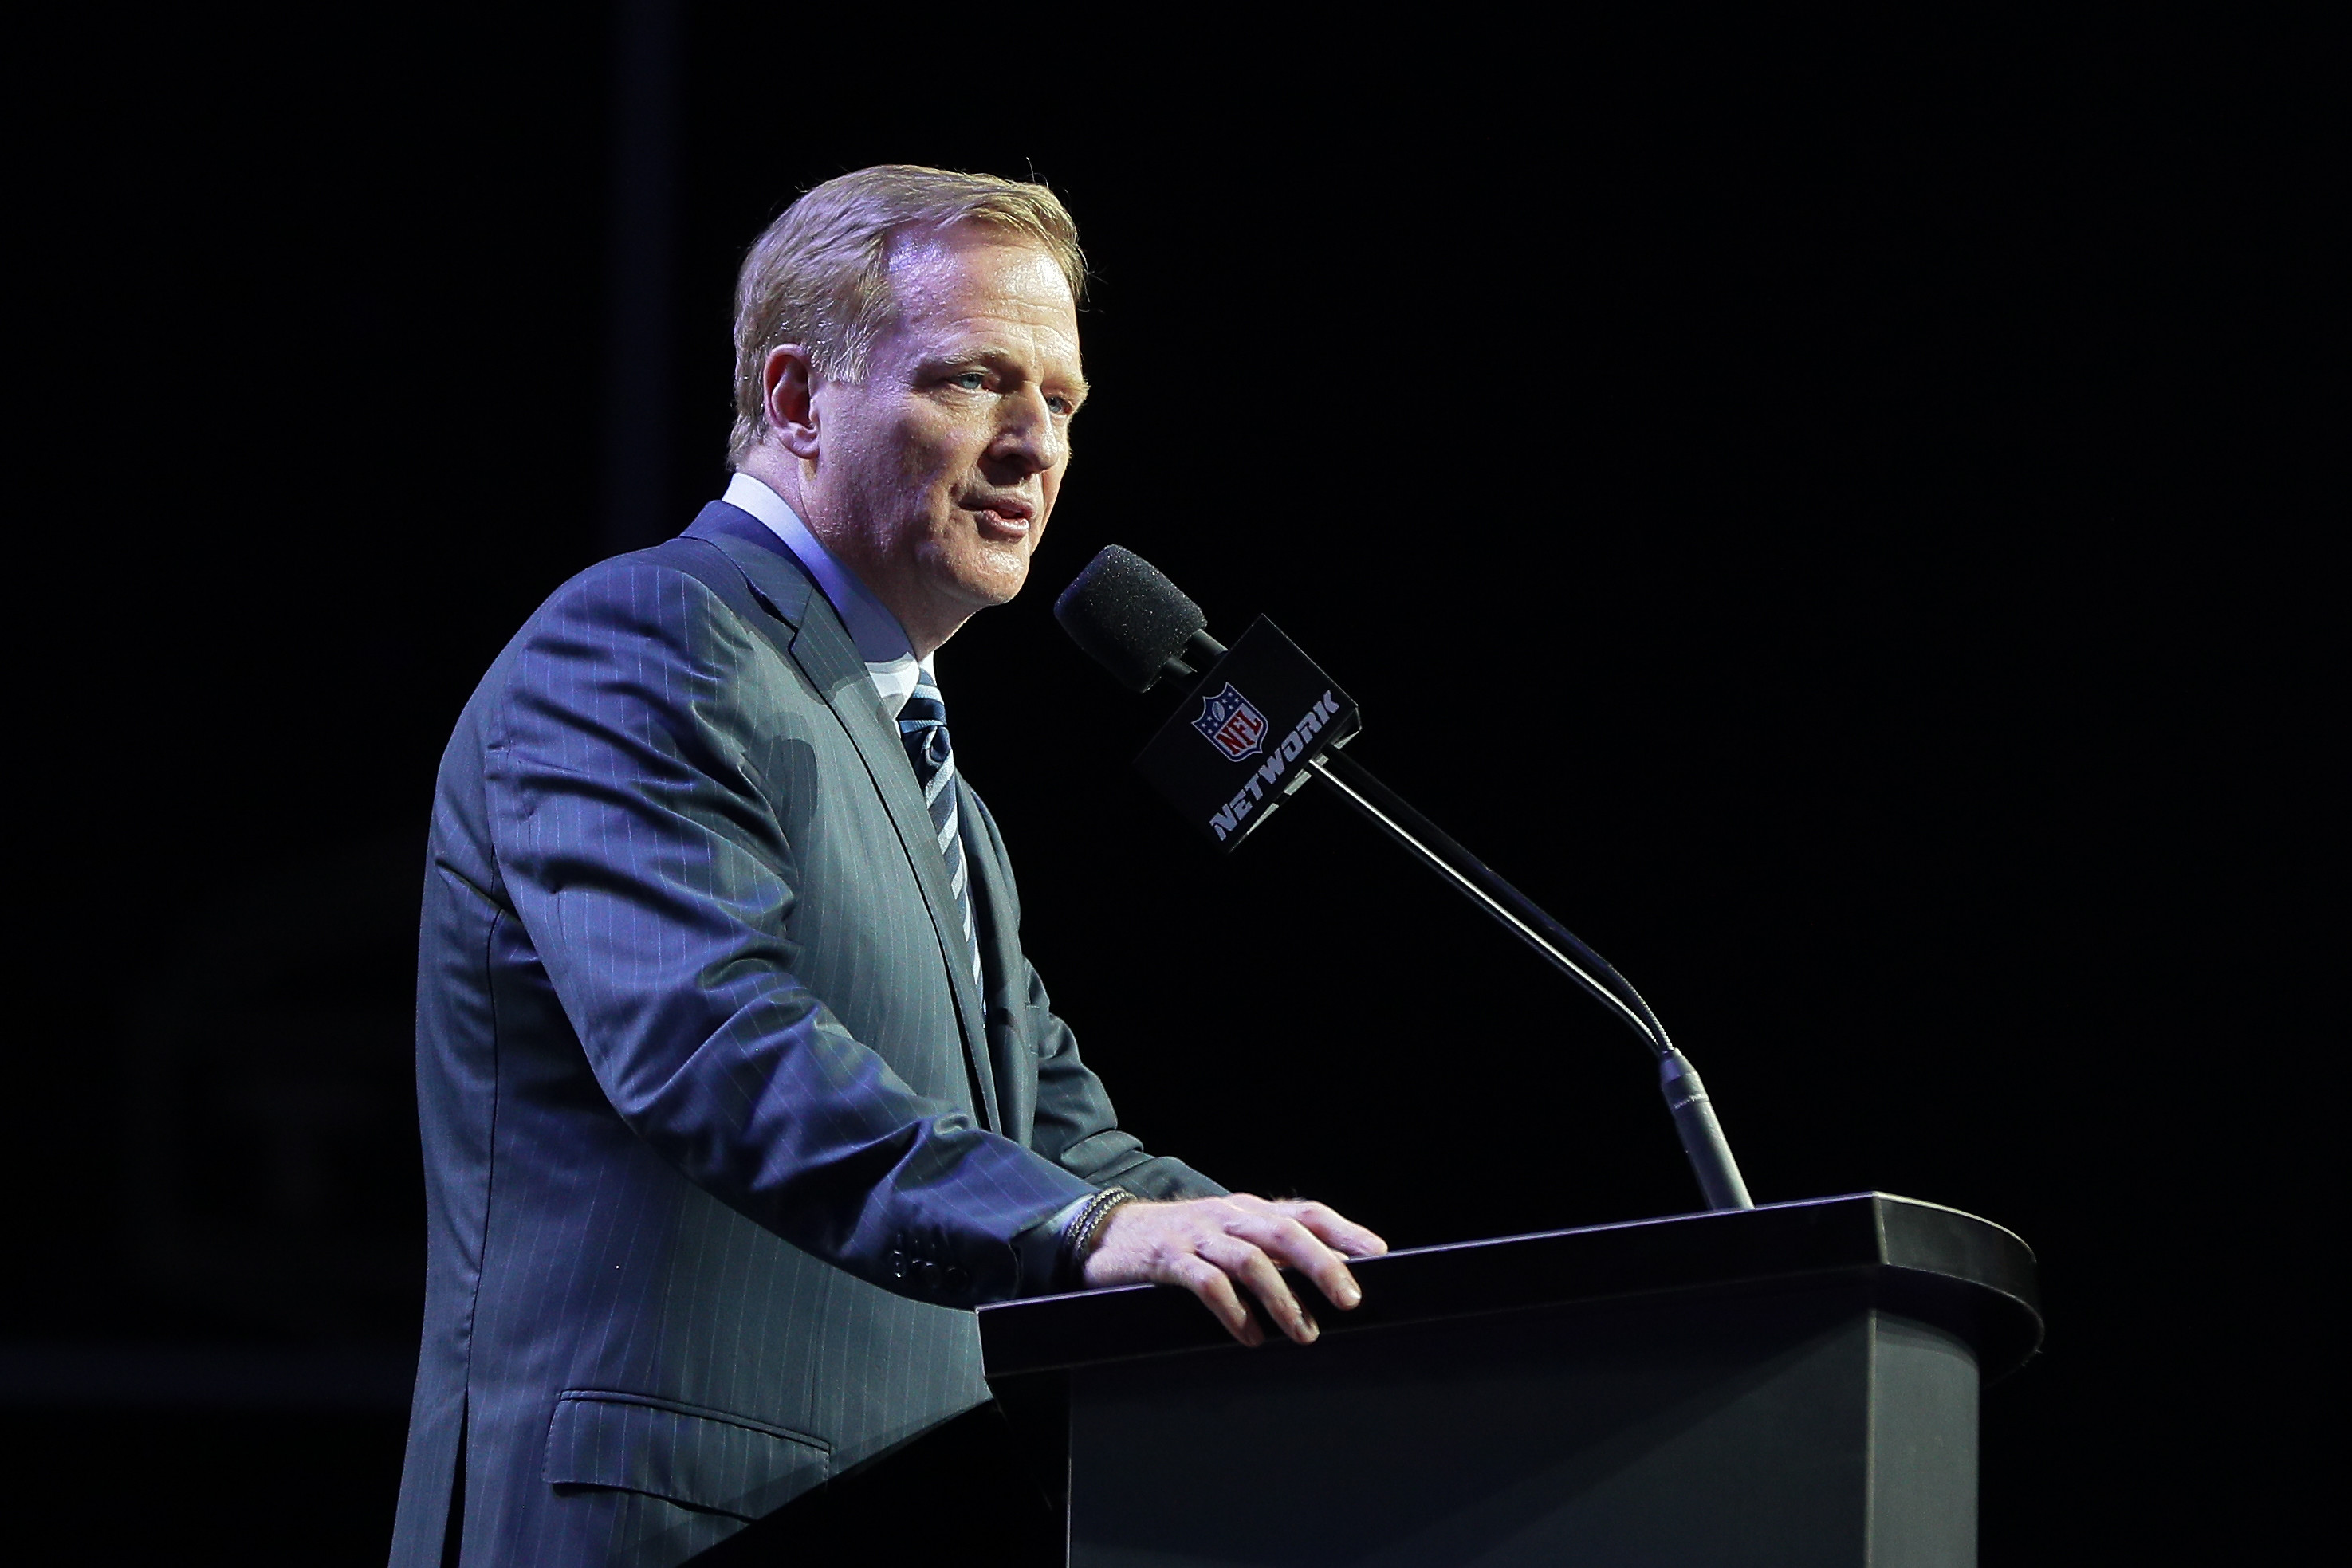 NFL Commissioner Roger Goodell during the first round of the 2017 NFL Draft at the NFL Draft Theater on April 27, 2017 in Philadelphia.